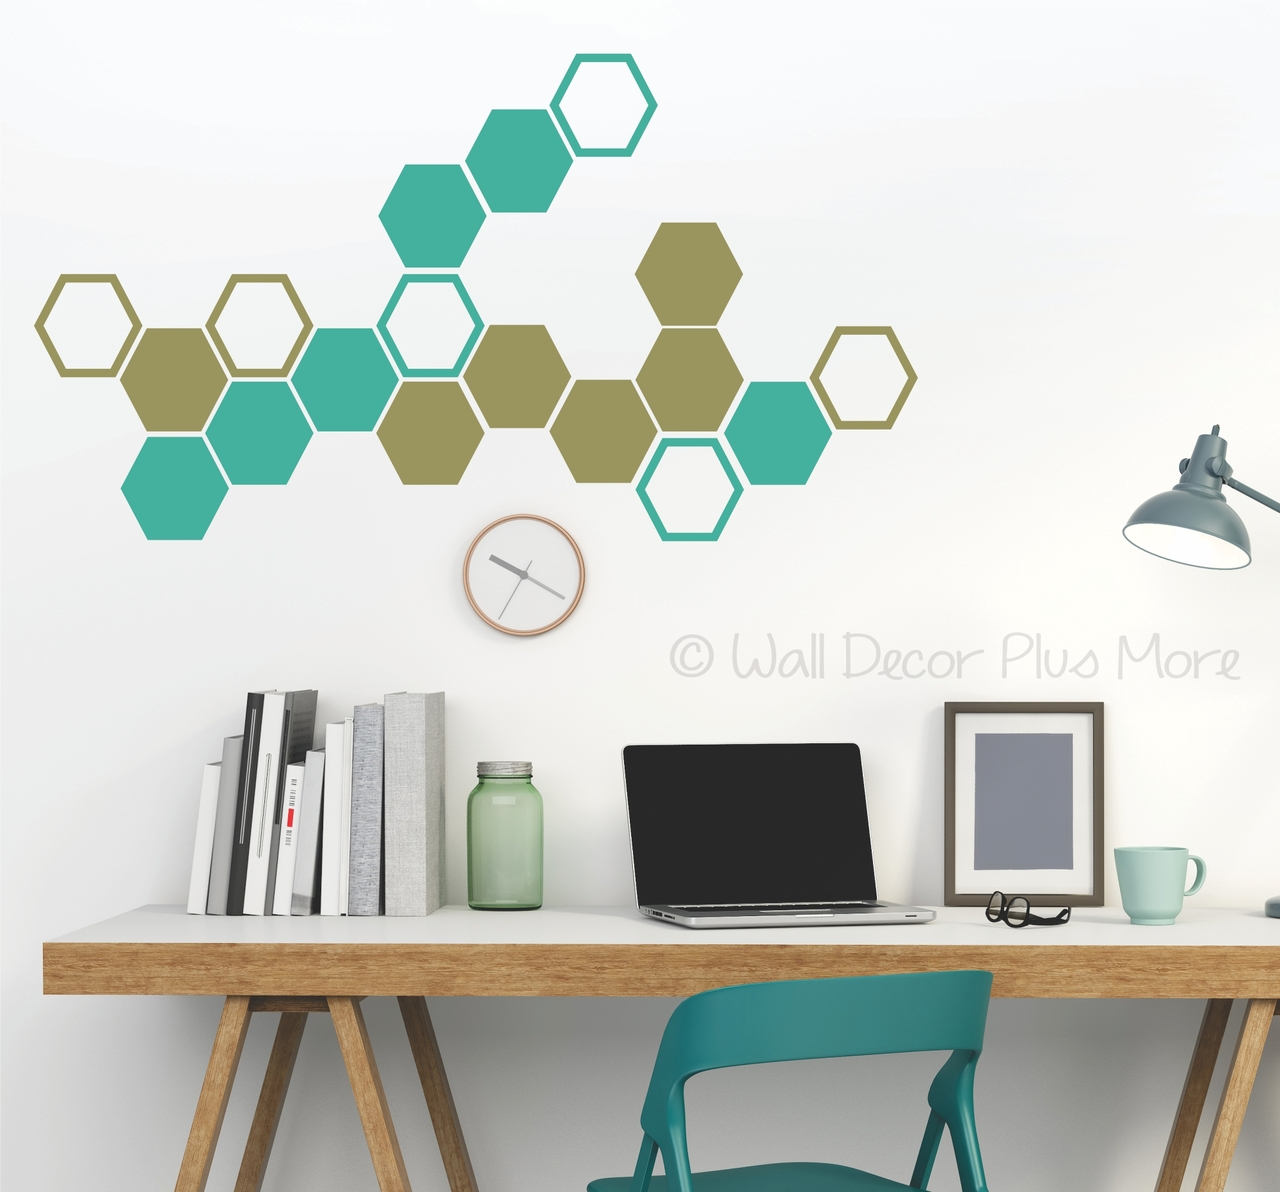 honeycomb hexagon wall sticker shapes 2 color vinyl decals decor arthoneycomb hexagon wall sticker shapes 2 color vinyl decals decor art turquoise, metallic